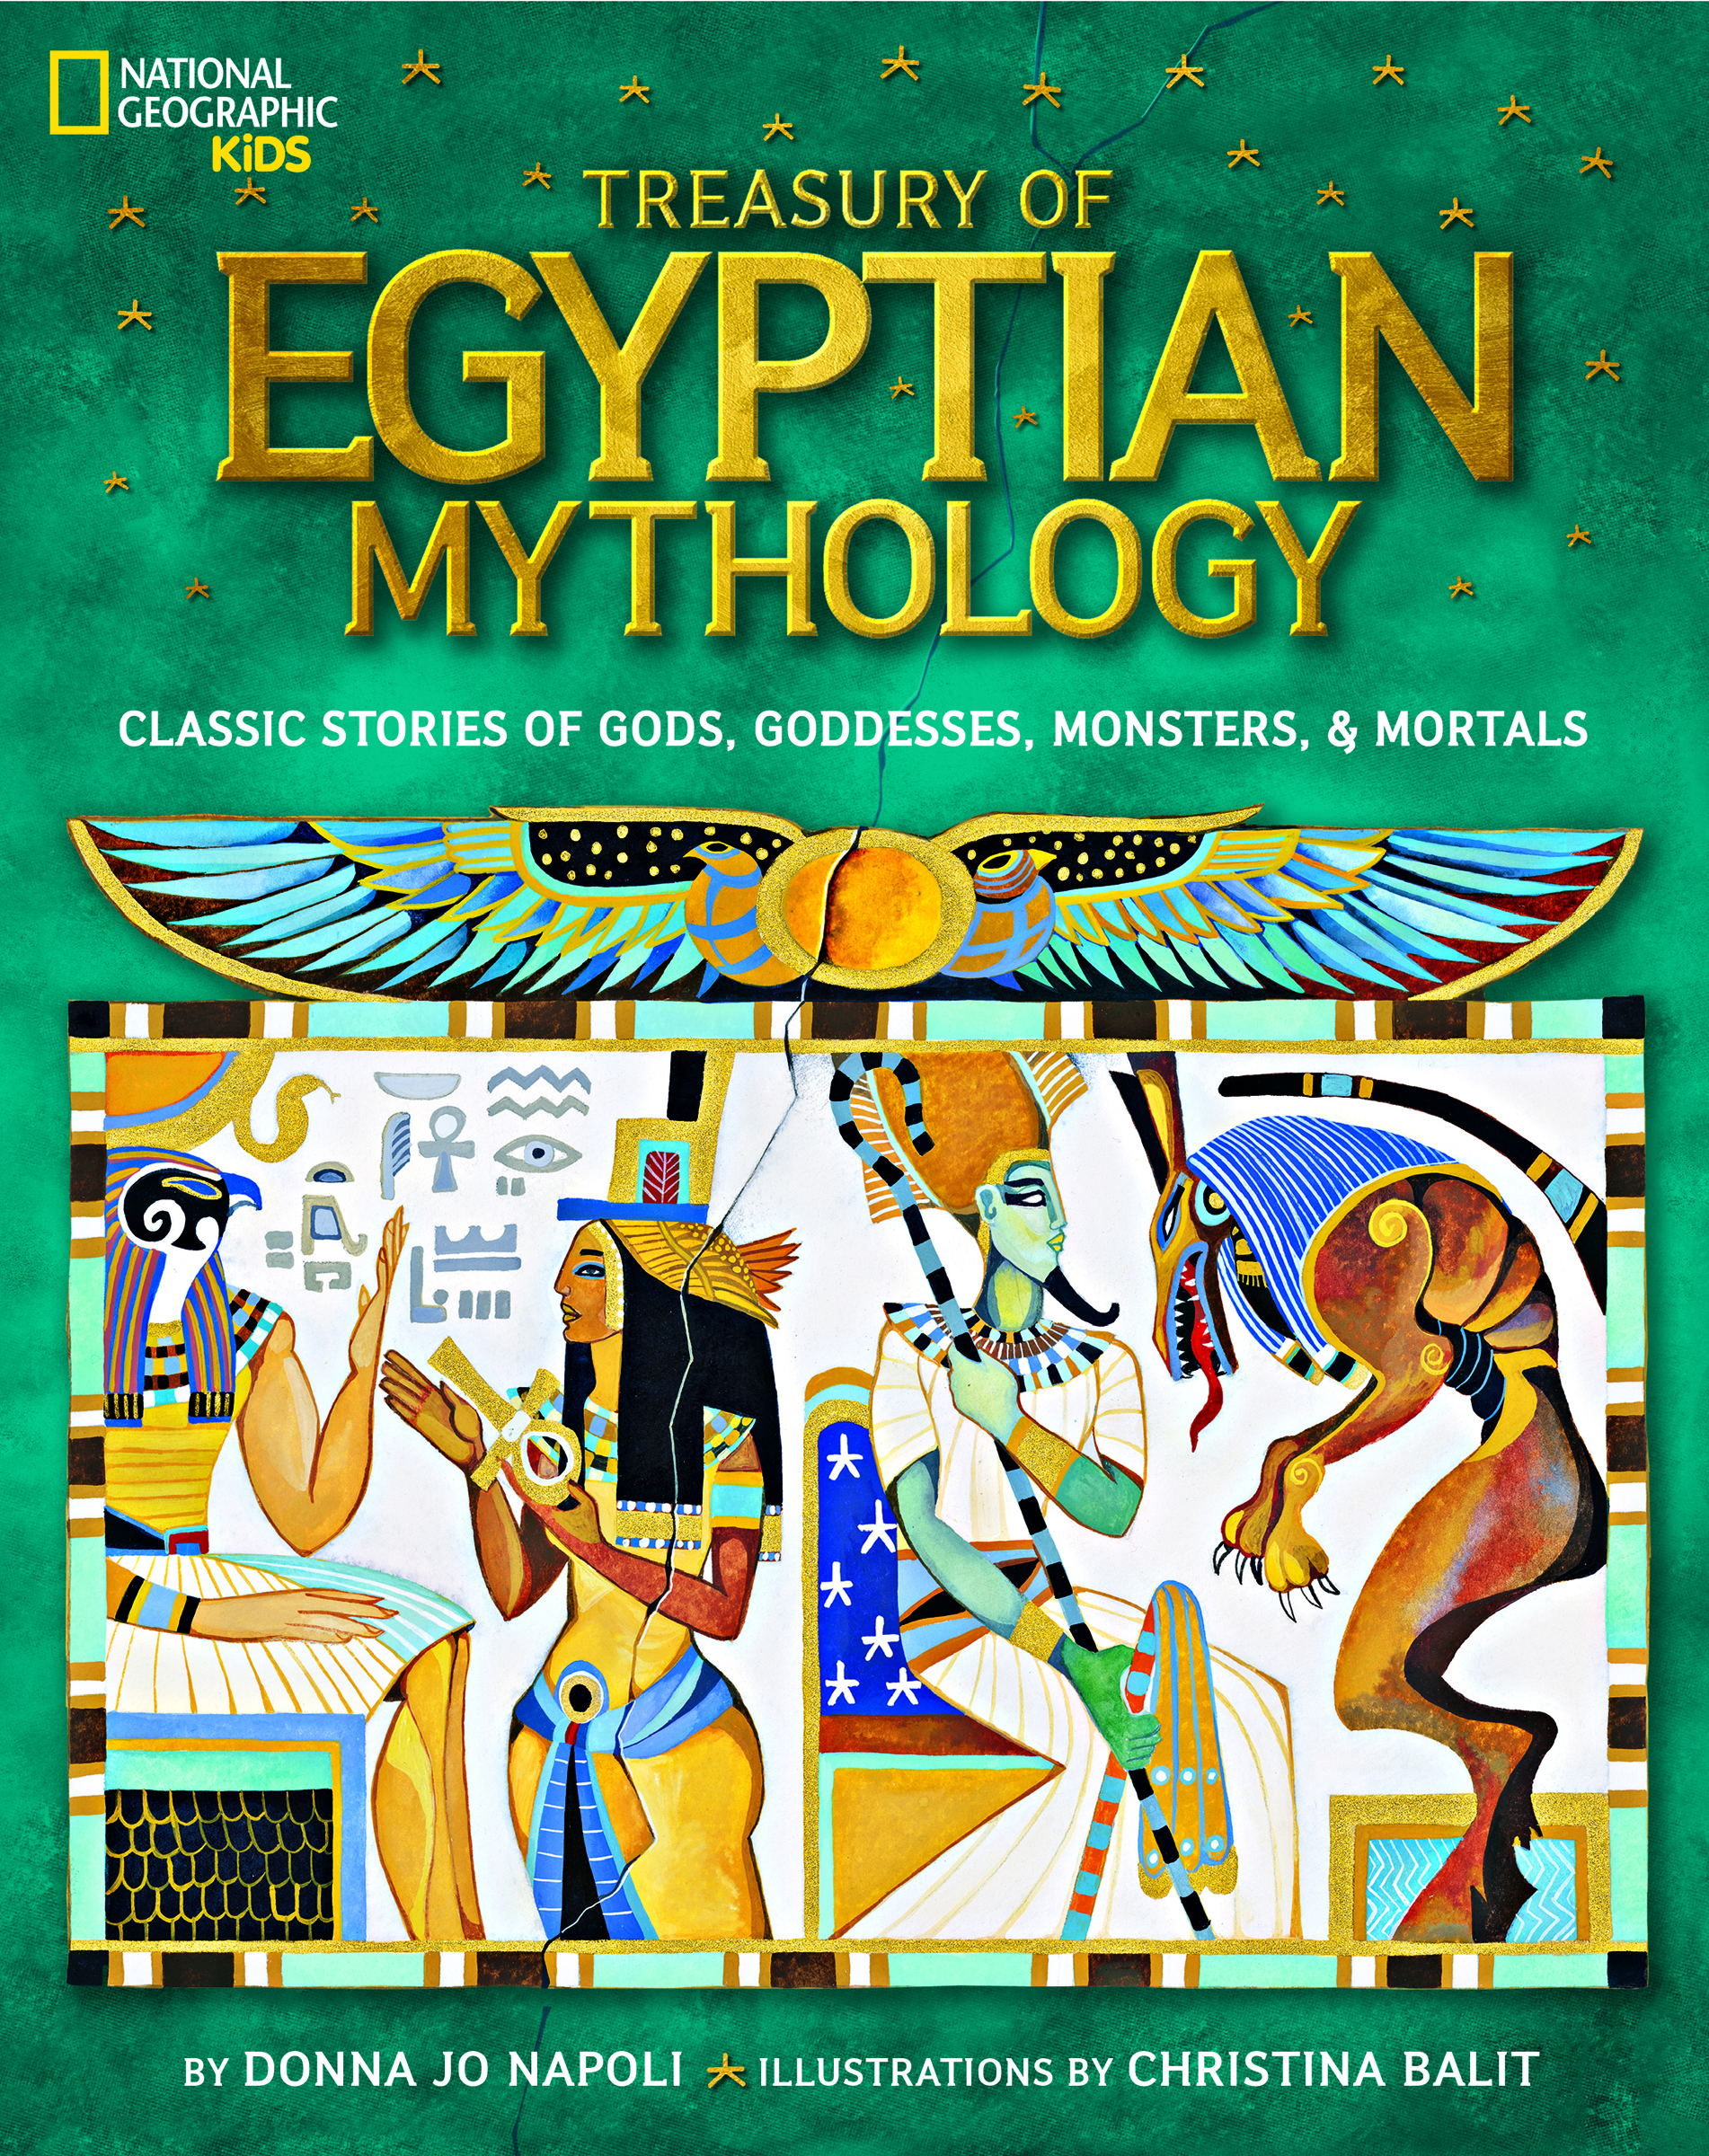 National Geographic Kids - Egyptian Mythology - MKB Birthday Party Giveaway